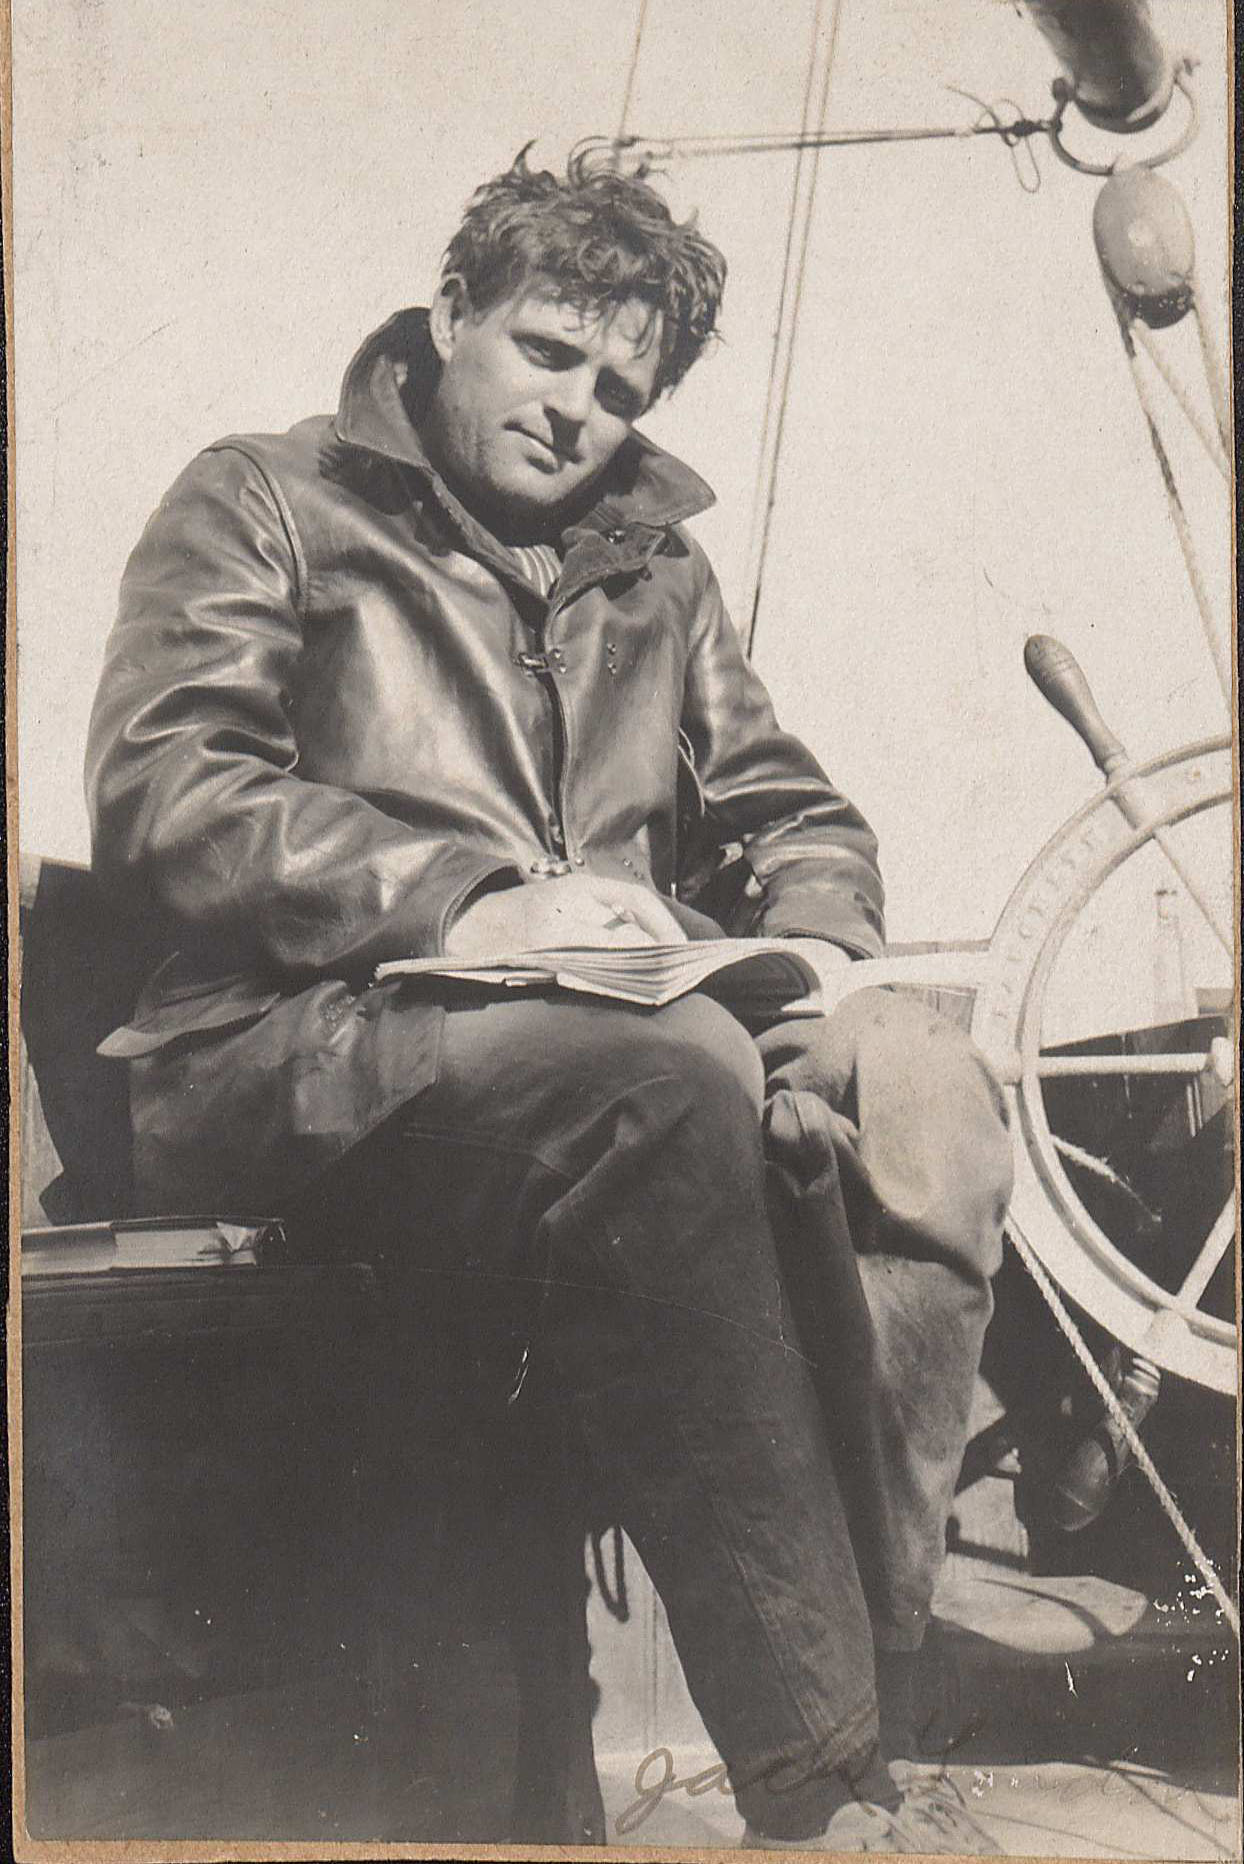 Signed photograph of Jack London, ca.1907-1908, , box 2, folder 39 Photo taken on board the Snark, the sailboat upon which he cruised the South Pacific for 27 months with his wife Charmian. (MSS 6240. Clifton Waller Barrett Library of American Literature. Image by Caroline Newcomb)